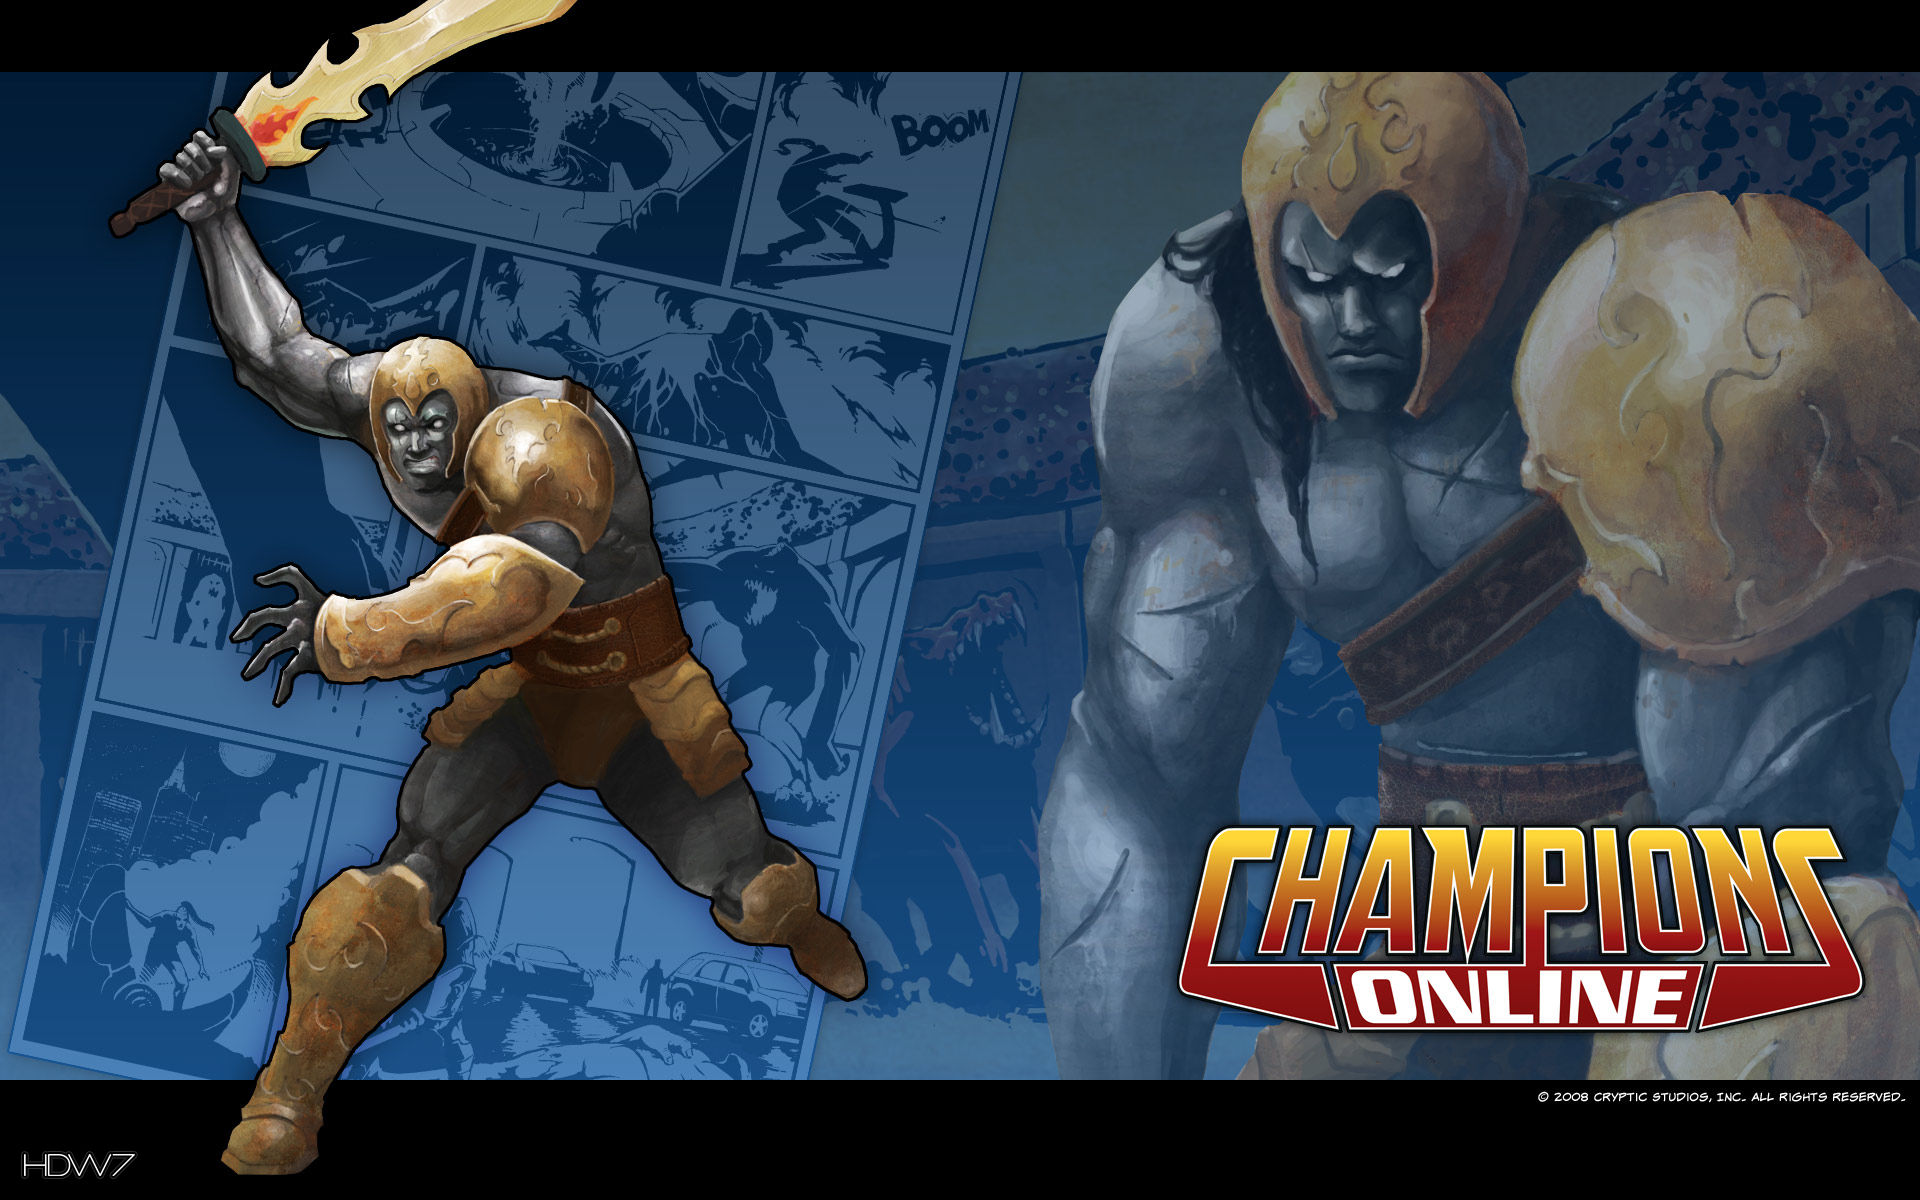 champions online ironclad widescreen wallpaper